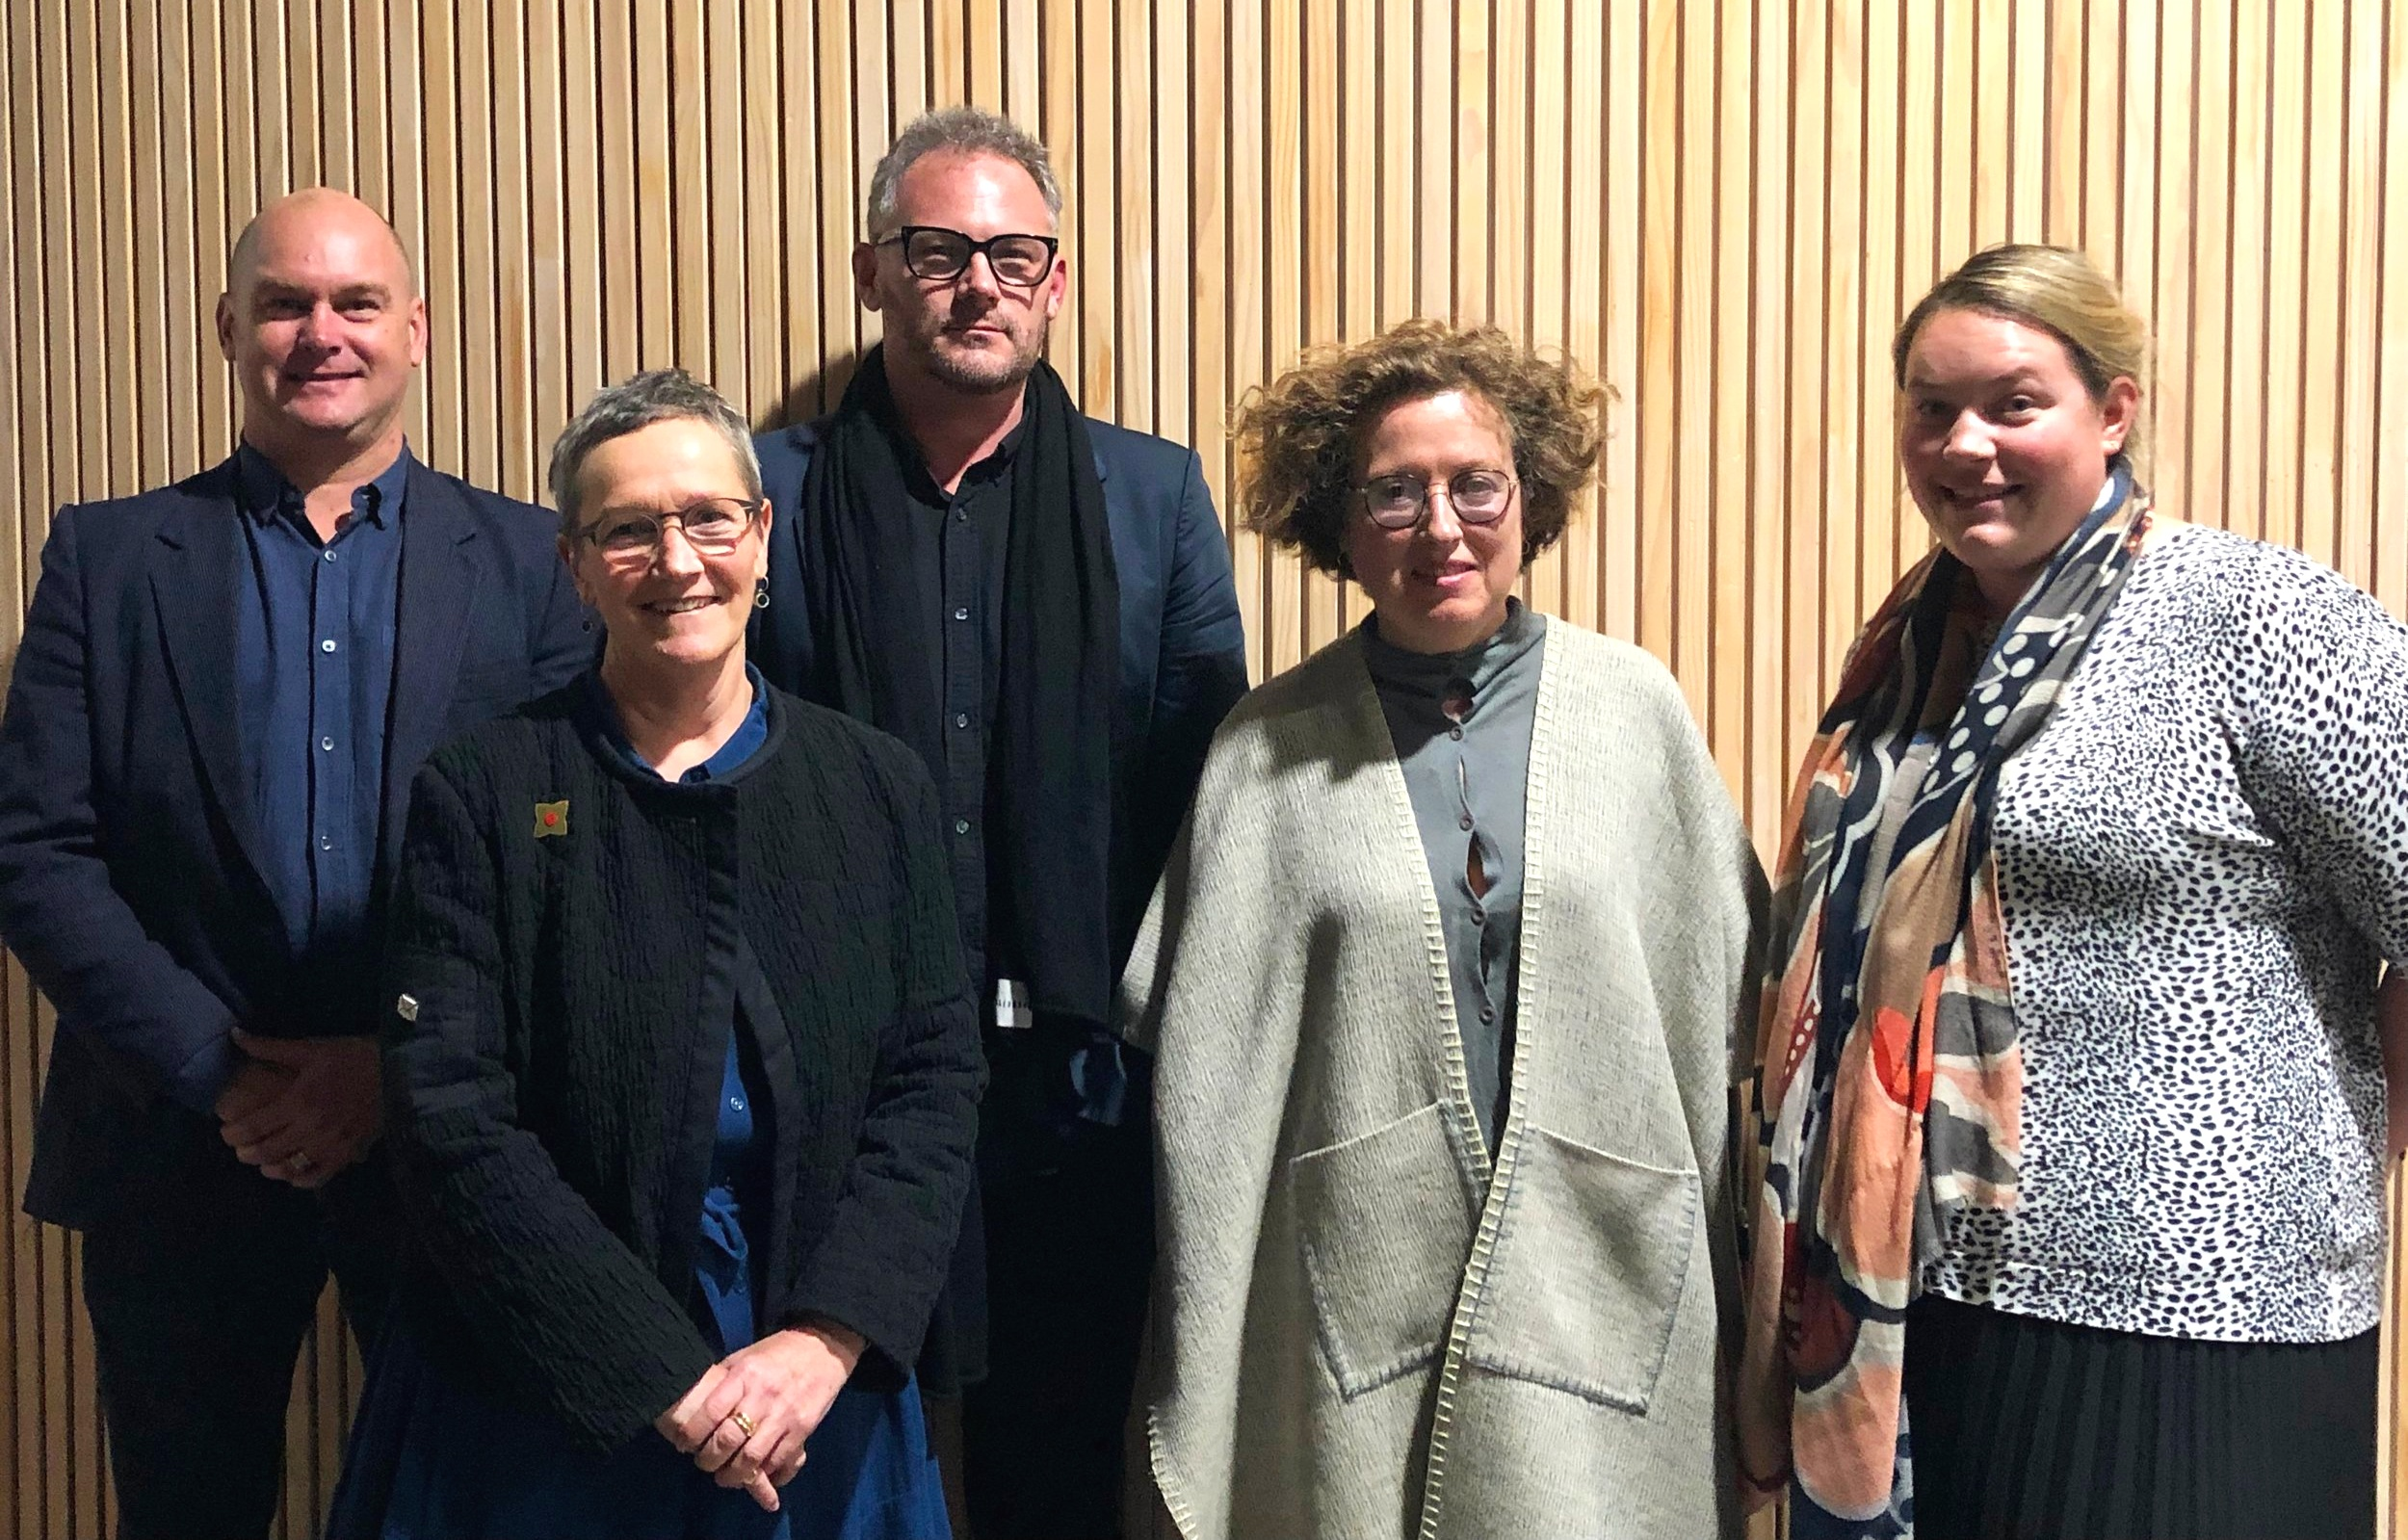 Catherine Mosbach with a team from the NZILA in Auckland last night. From left Brad Coombs, Rachel de Lambert, Henry Crothers, Catherine Mosbach, Julia Wick.